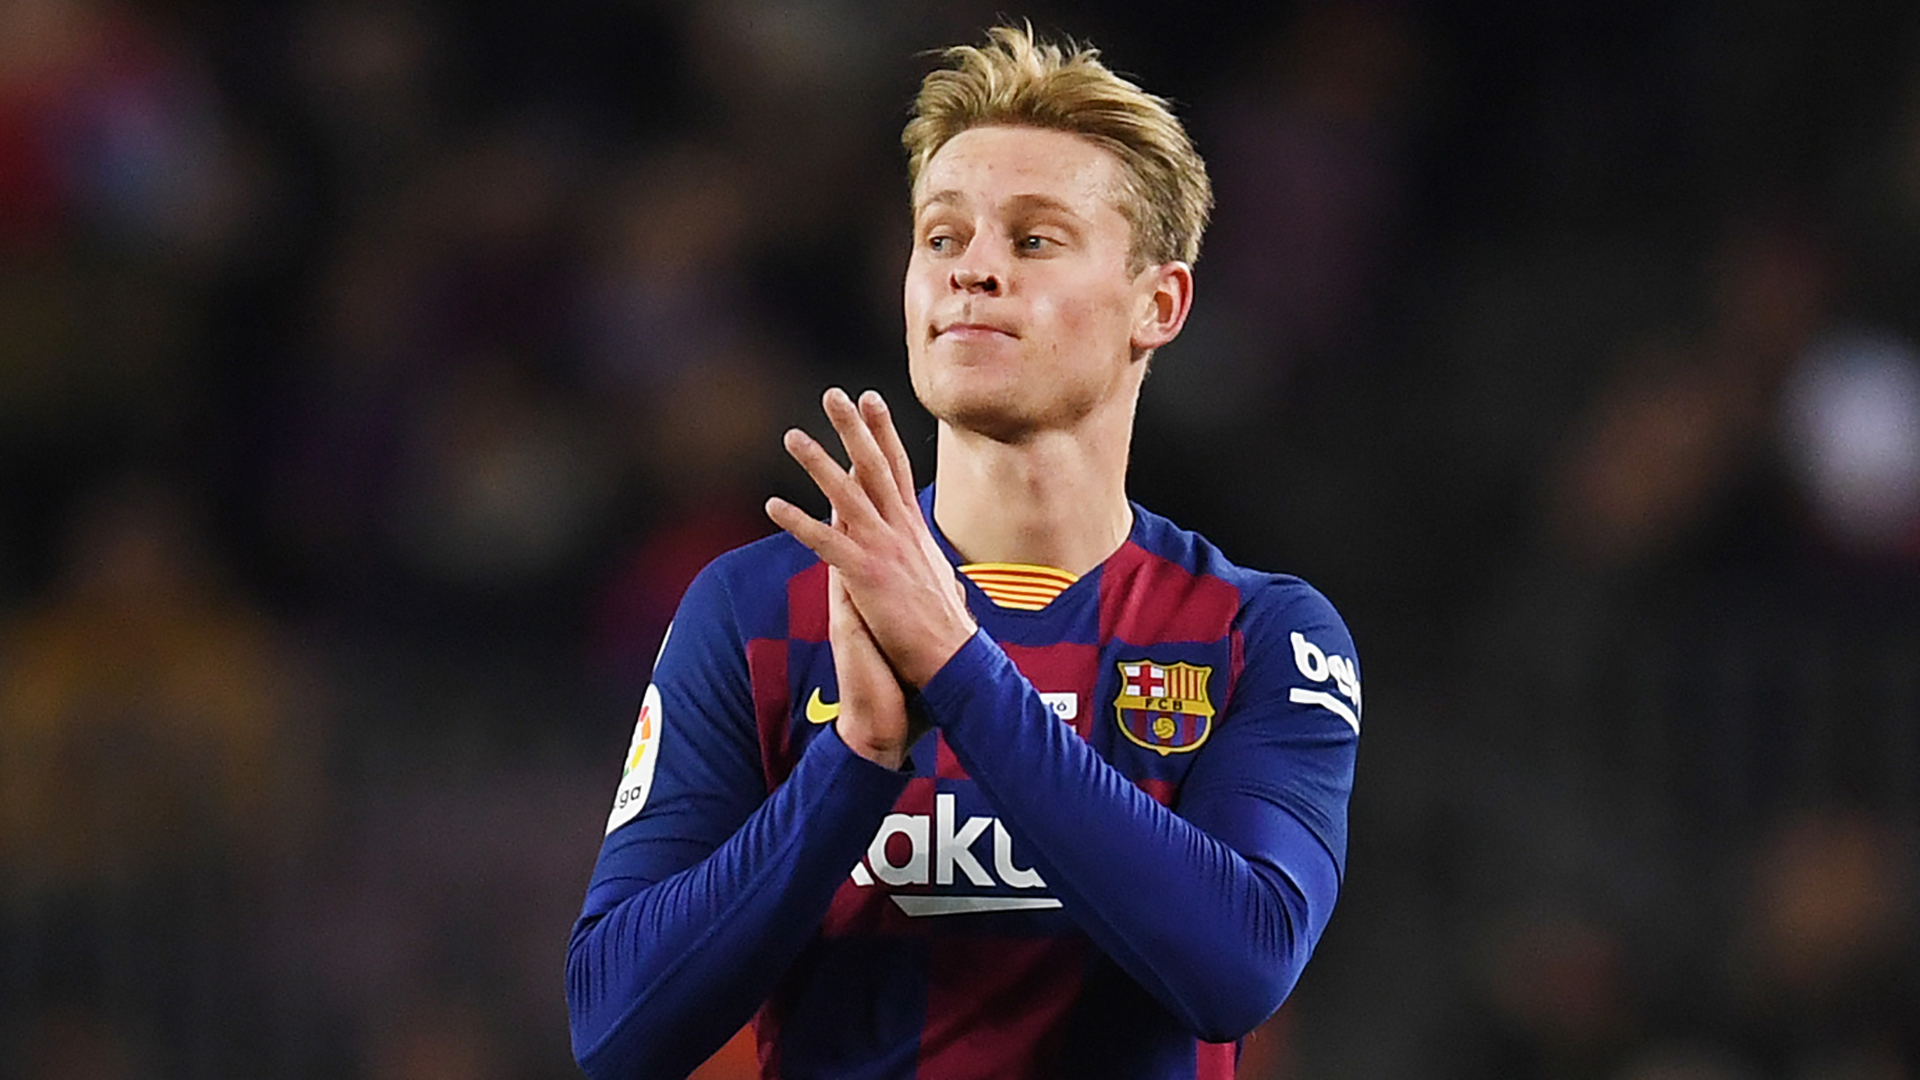 De Jong: I could have done much better in first season at Barcelona